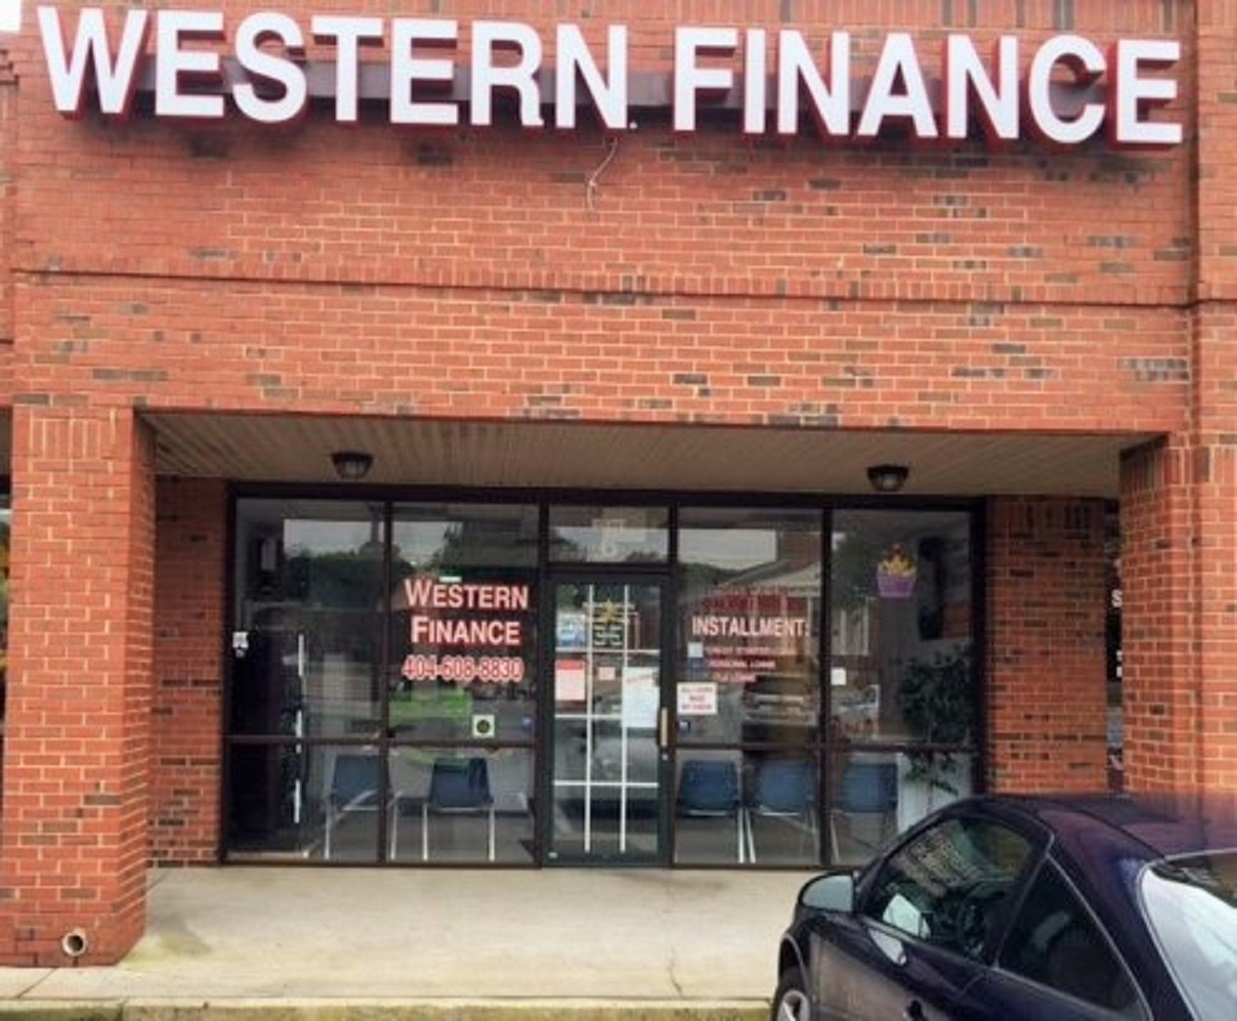 Ace payday loans locations image 6